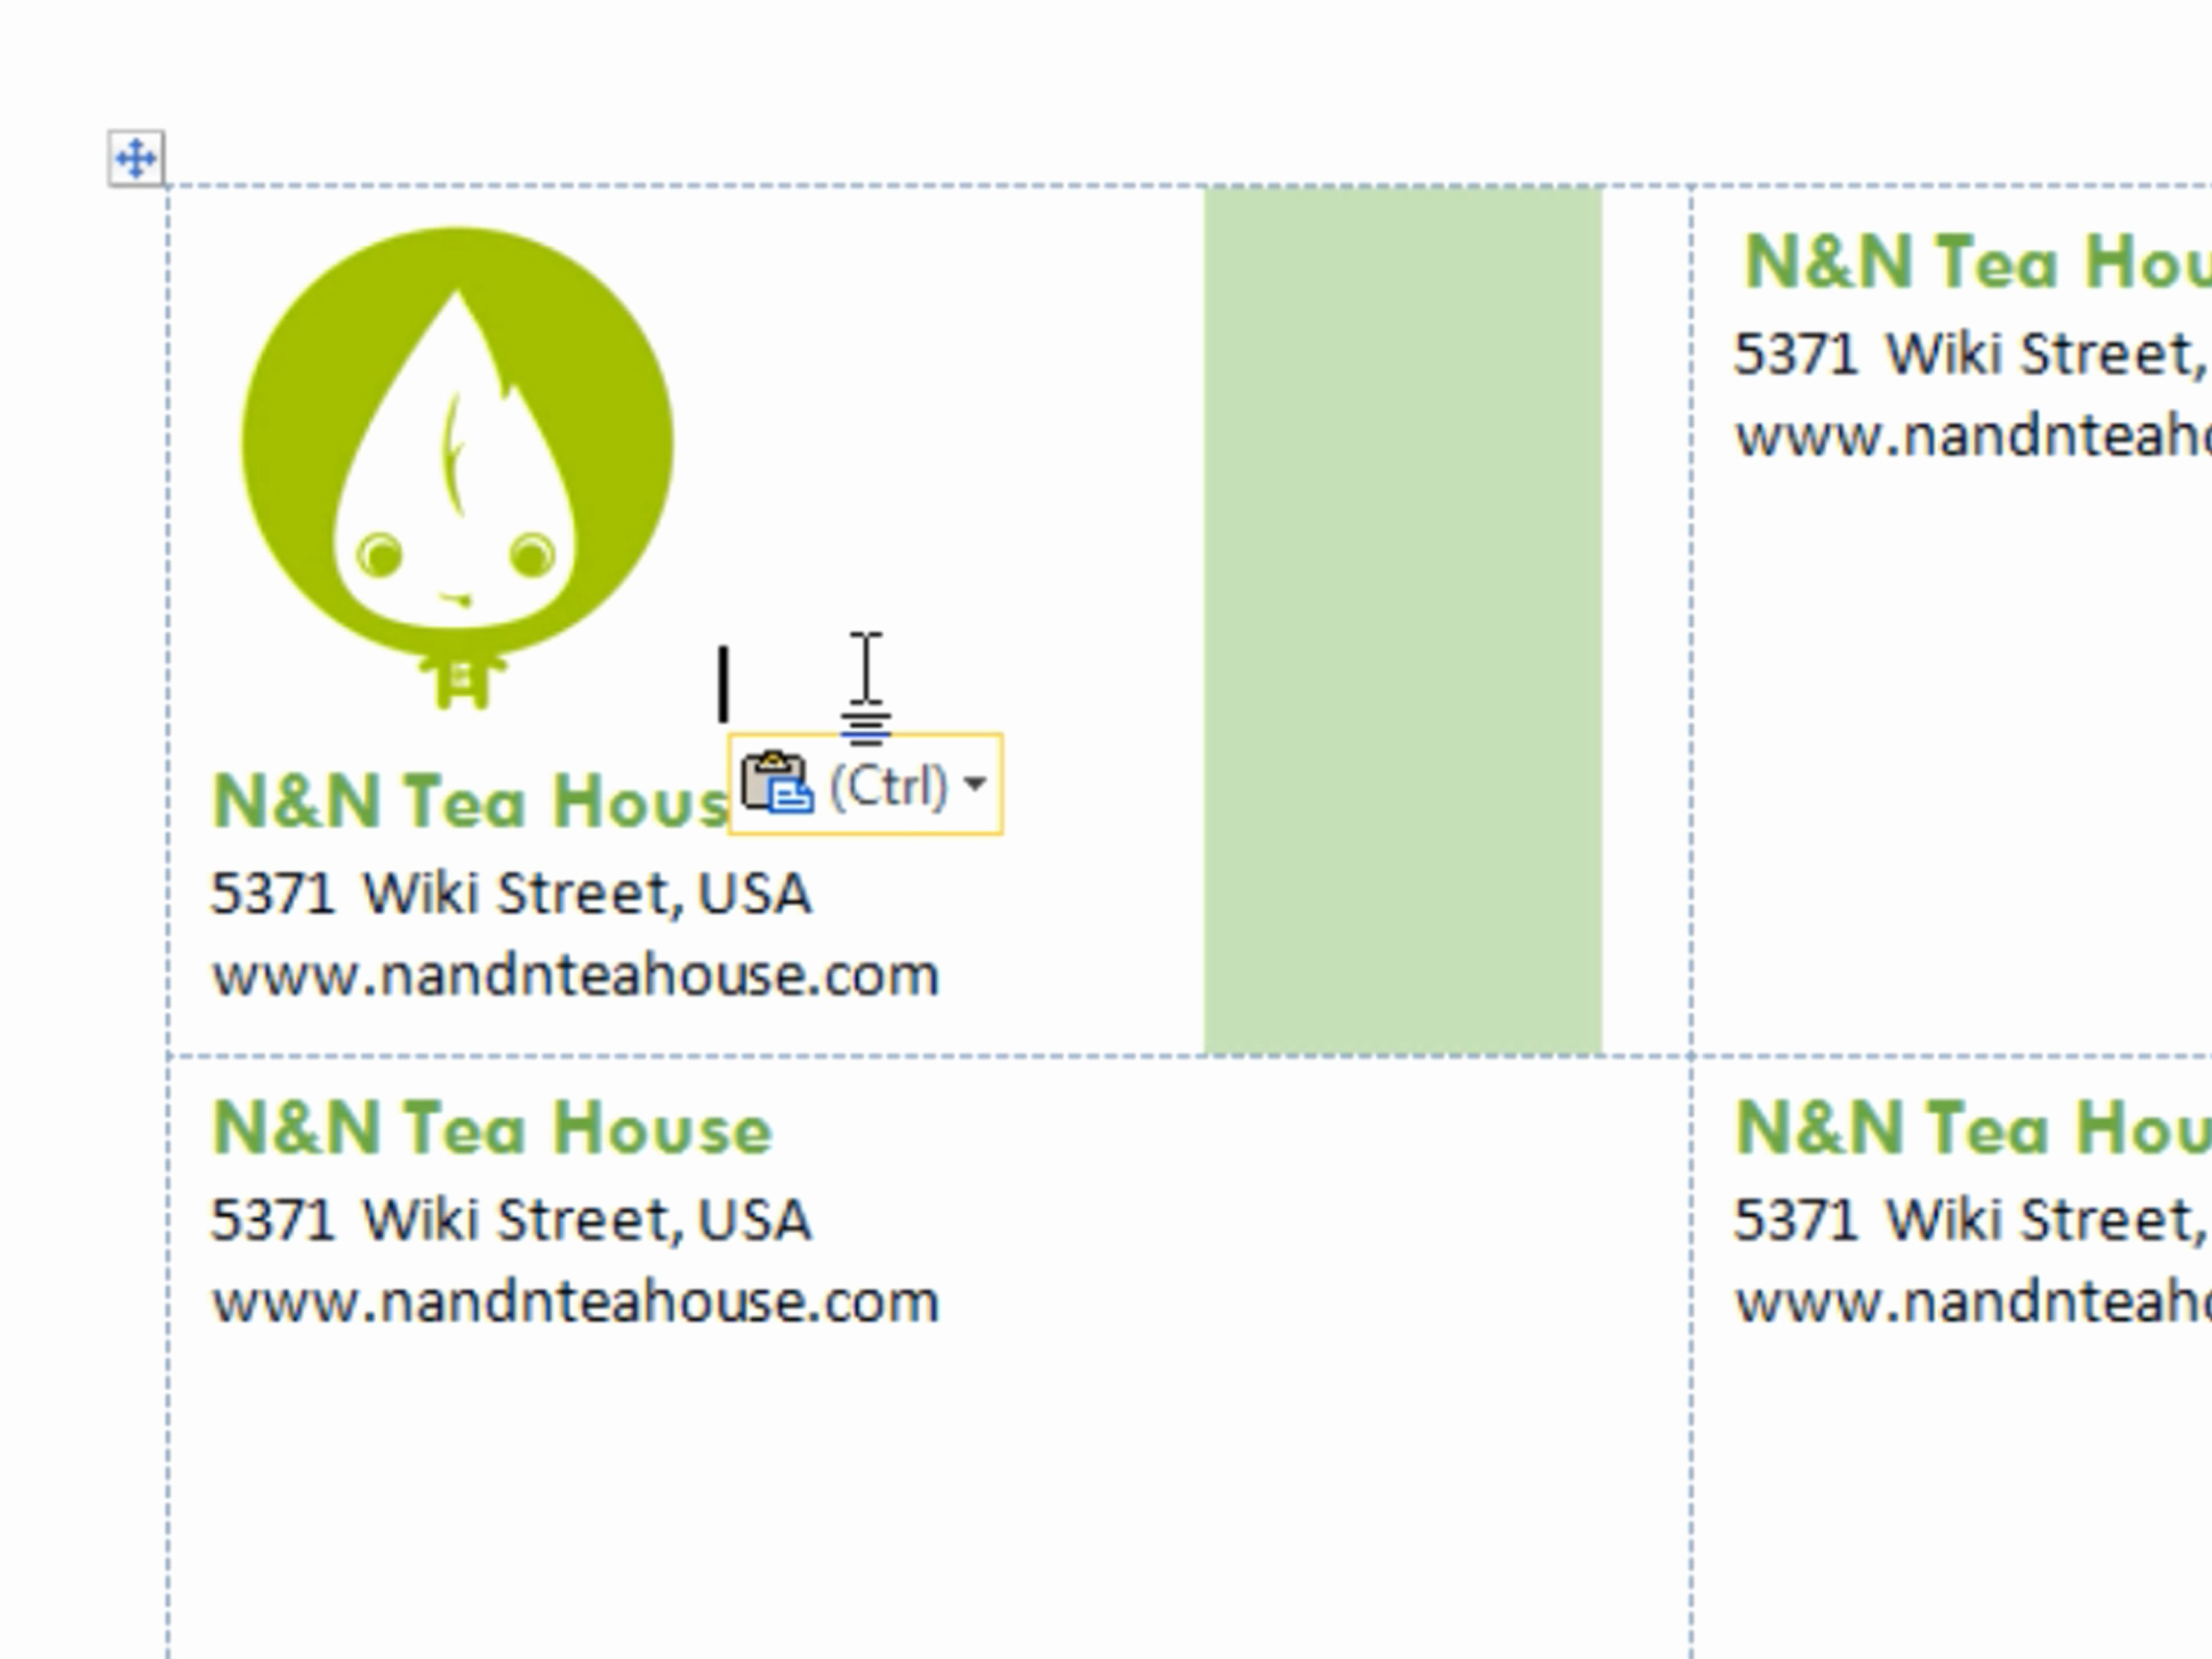 Microsoft Word Template Business Cards Lovely Business Cards Templates Free for Word